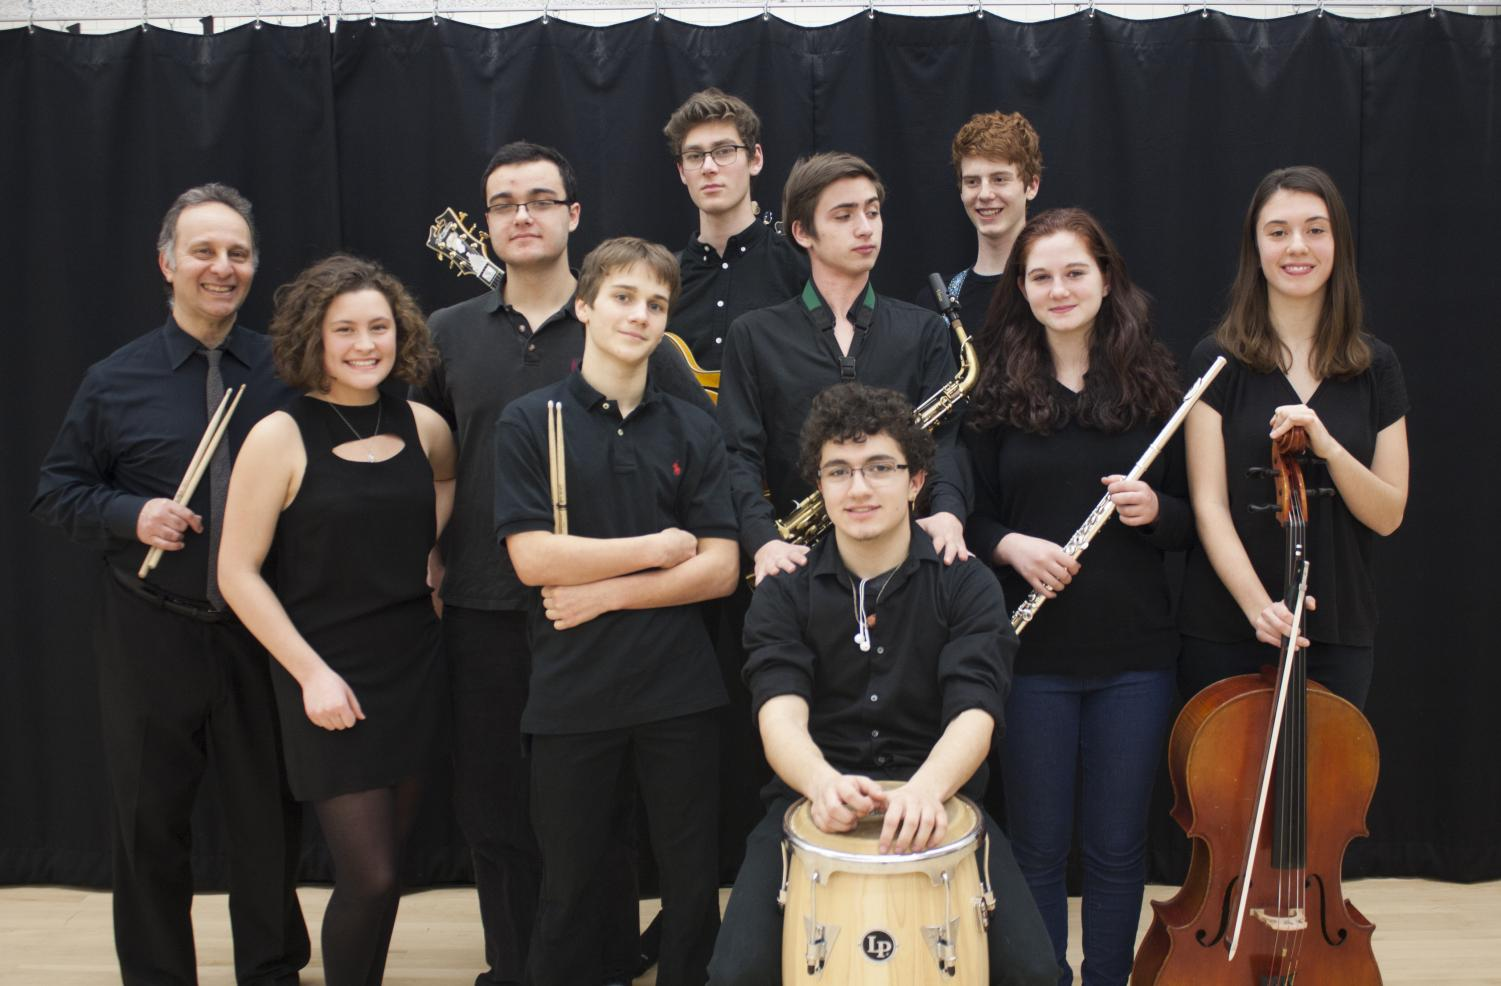 Six members of the CRLS World Jazz Ensemble took classes at Berklee over the summer.